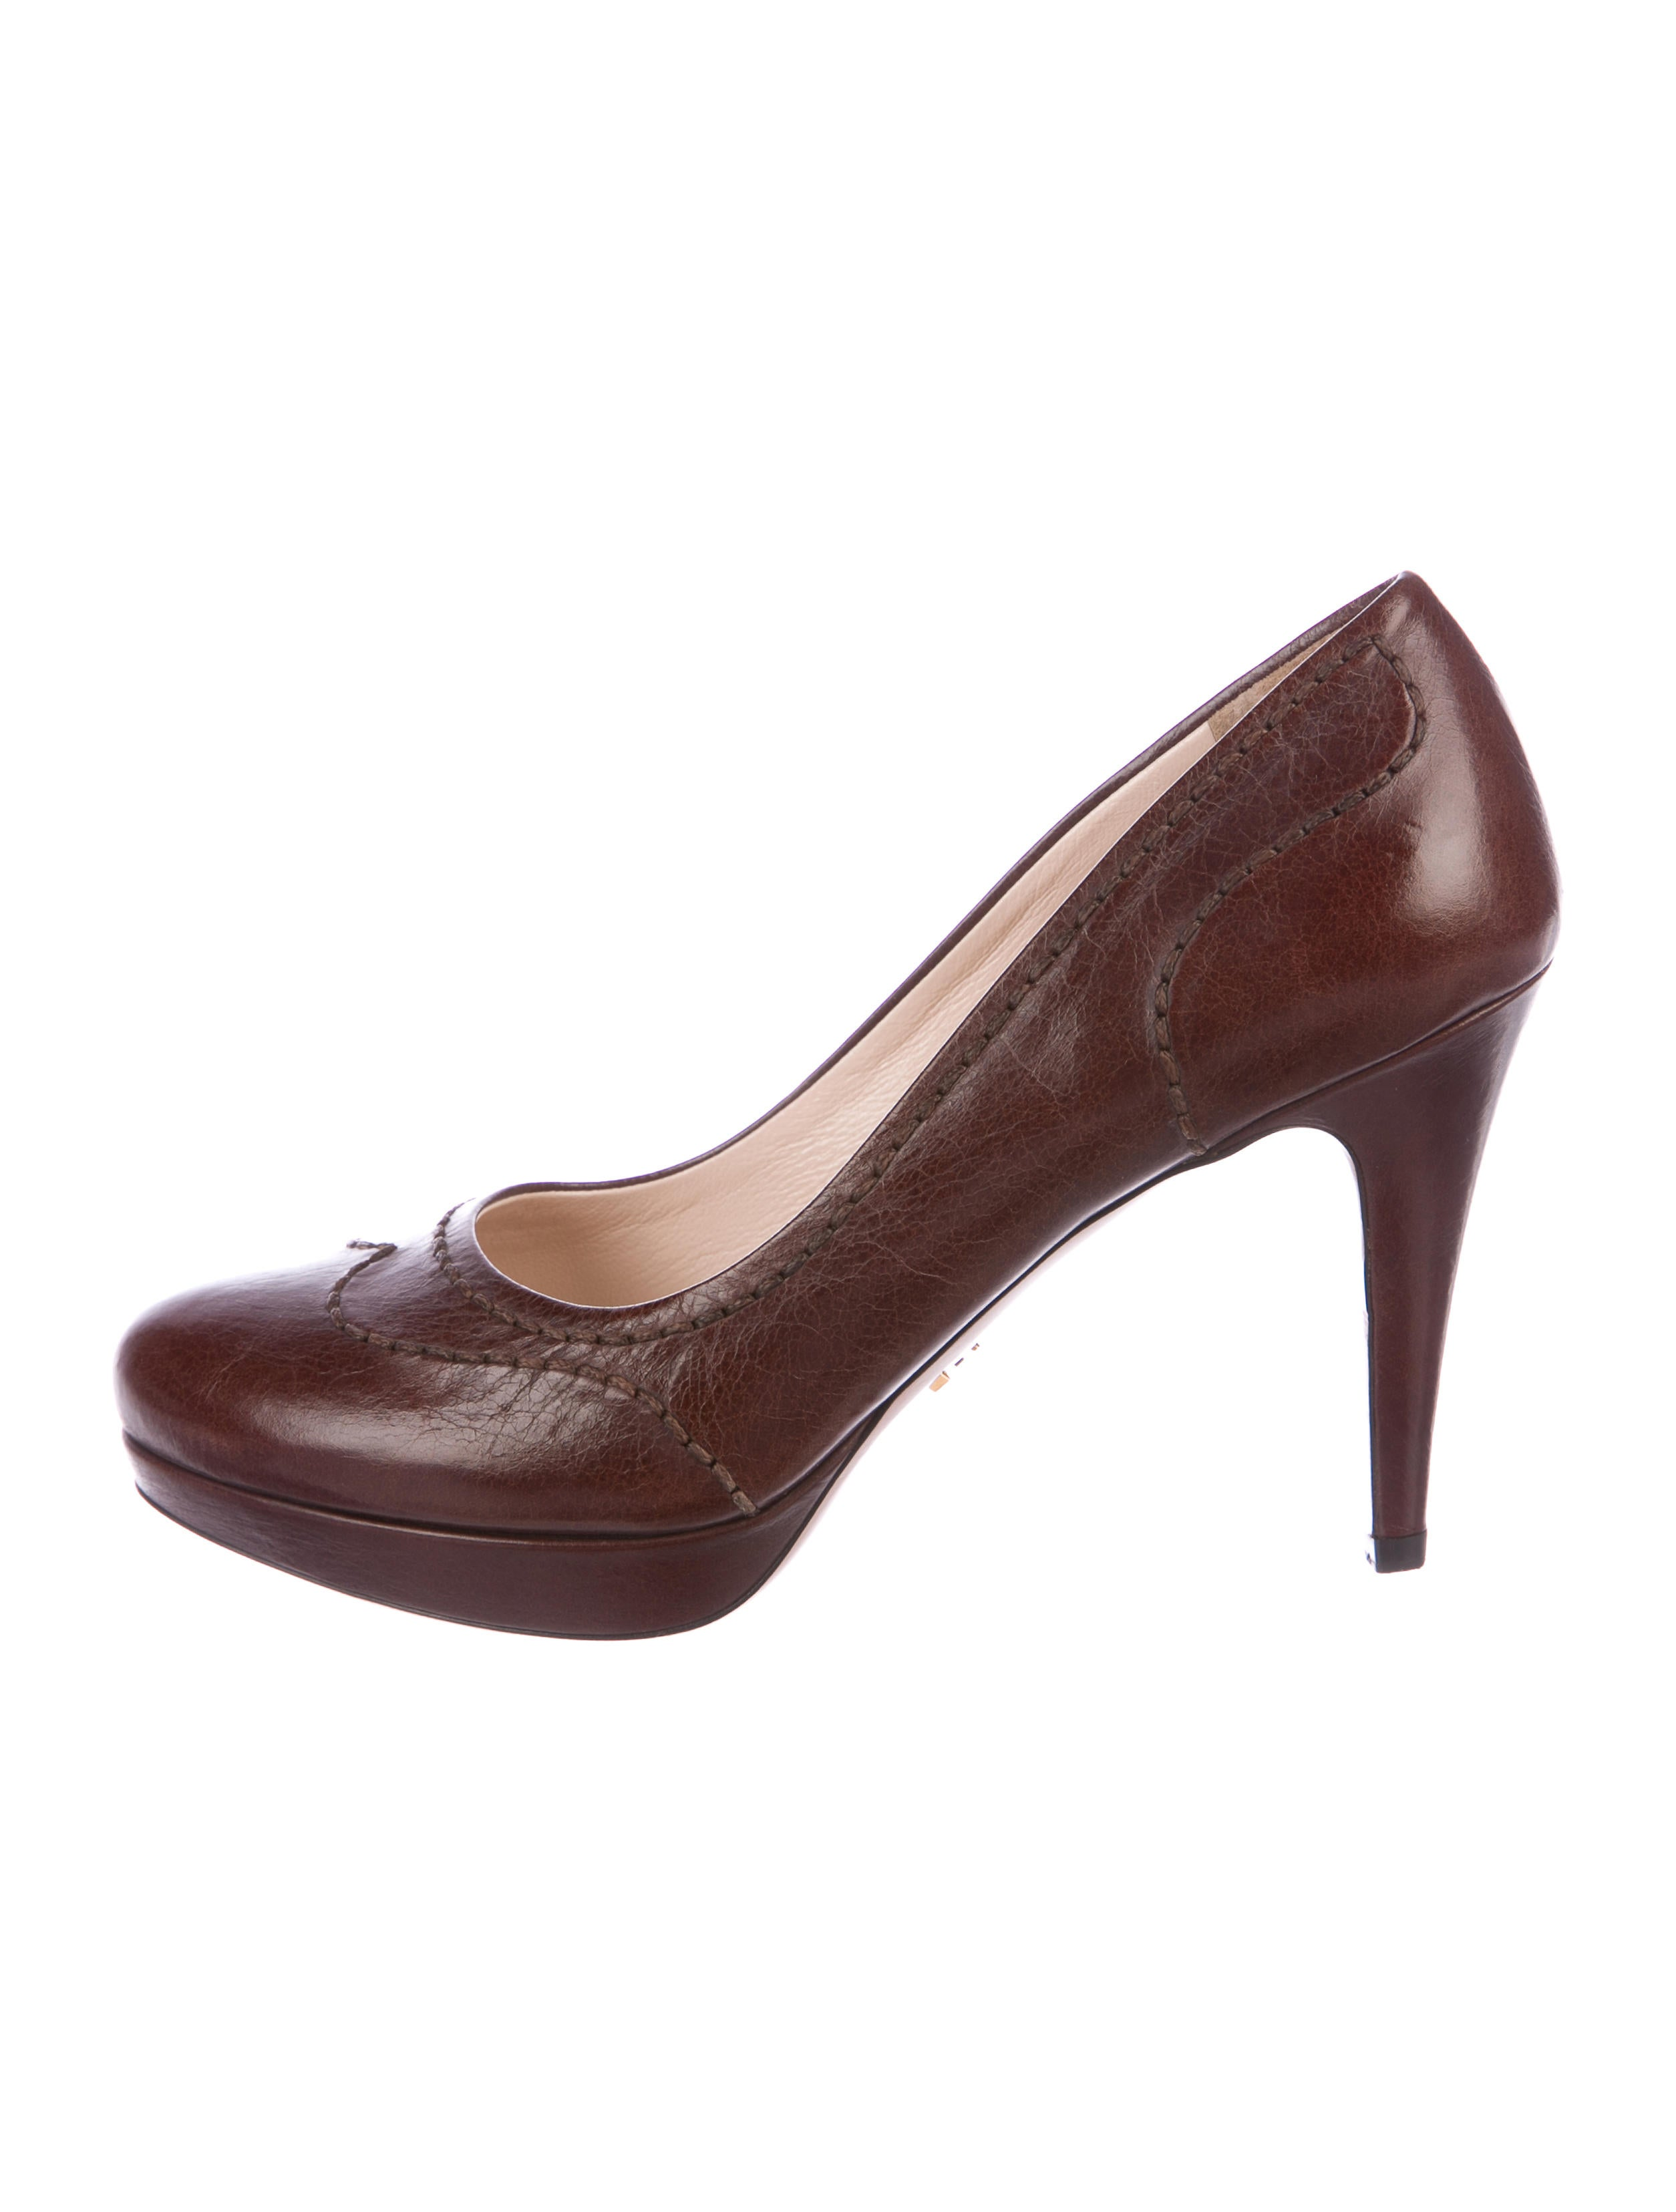 Prada Leather Wingtip Pumps footlocker pictures cheap online clearance top quality free shipping very cheap free shipping largest supplier discount visit new FIL5Qm6tC